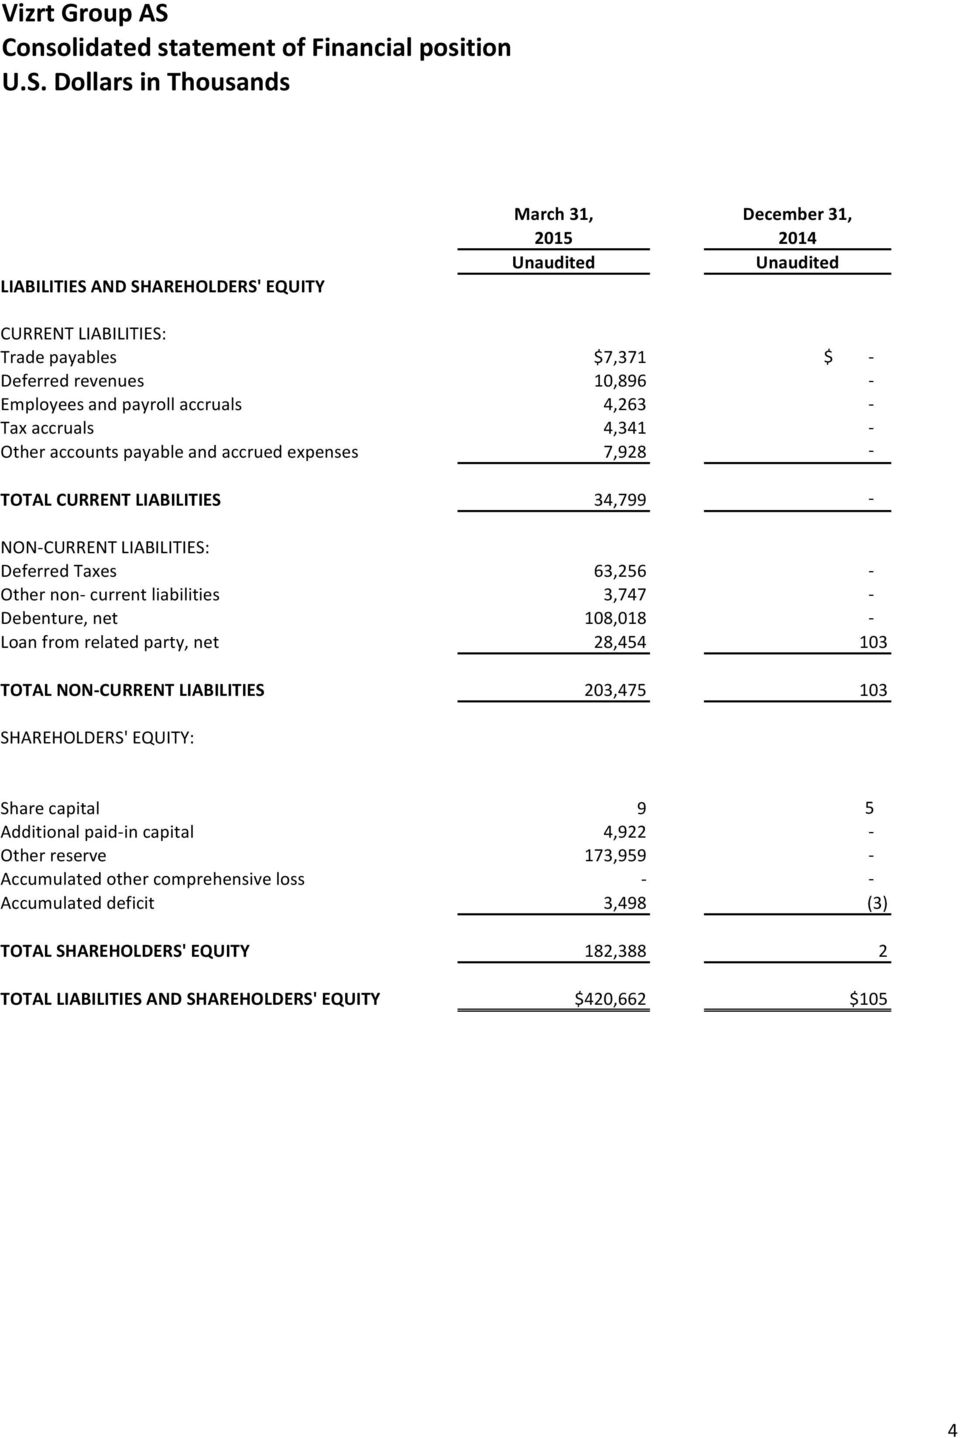 liabilities 3,747 - Debenture, net 108,018 - Loan from related party, net 28,454 103 TOTAL NON-CURRENT LIABILITIES 203,475 103 SHAREHOLDERS' EQUITY: Share capital 9 5 Additional paid-in capital